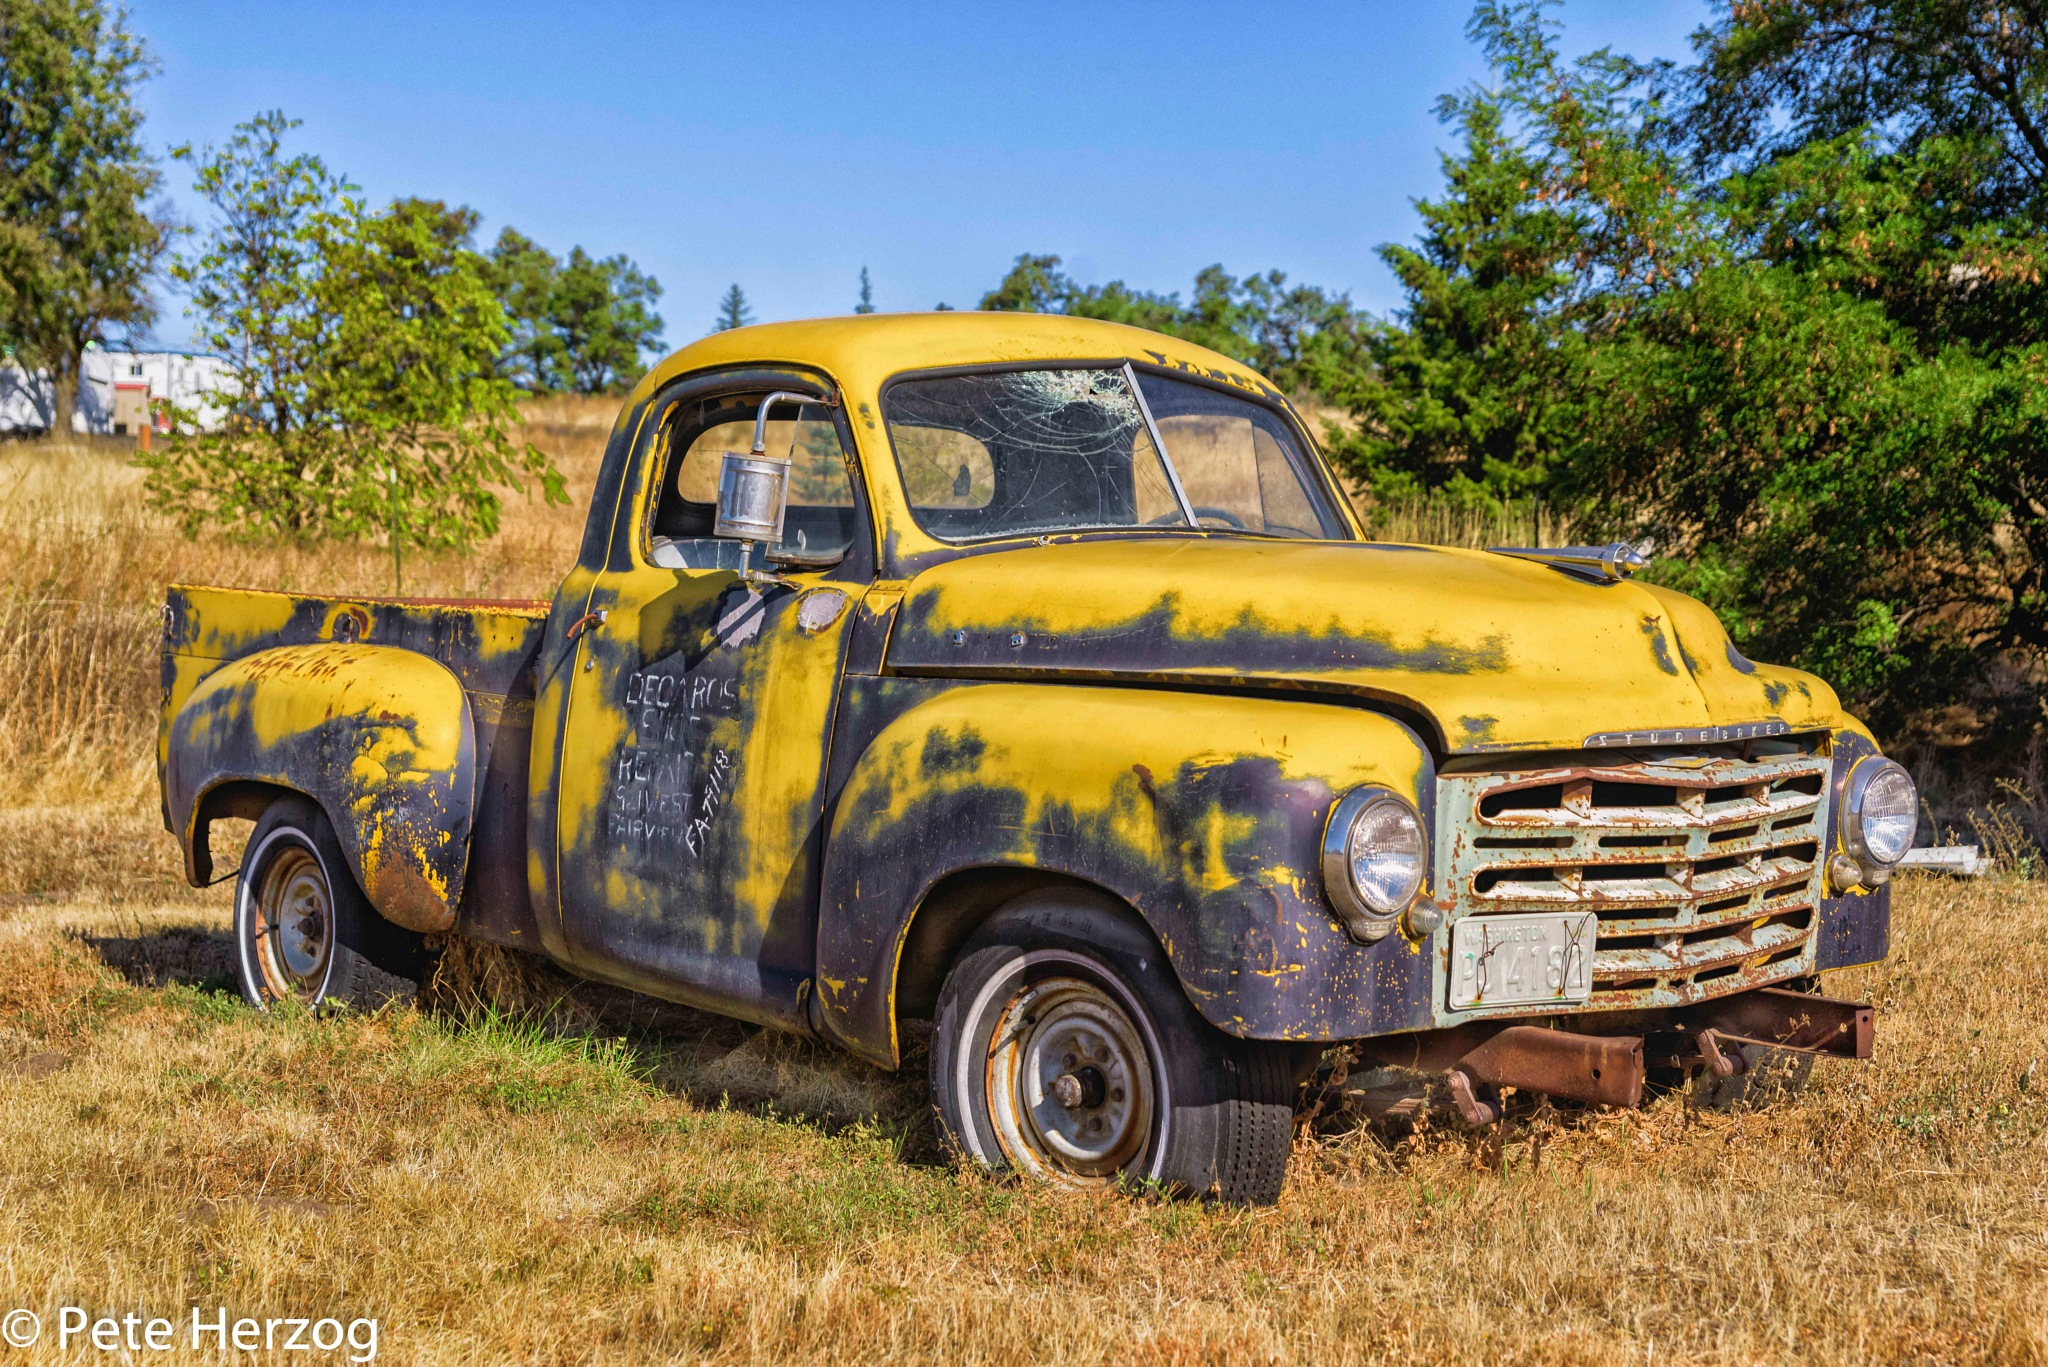 1951 Studebaker Pickup by peter.herzog.3323